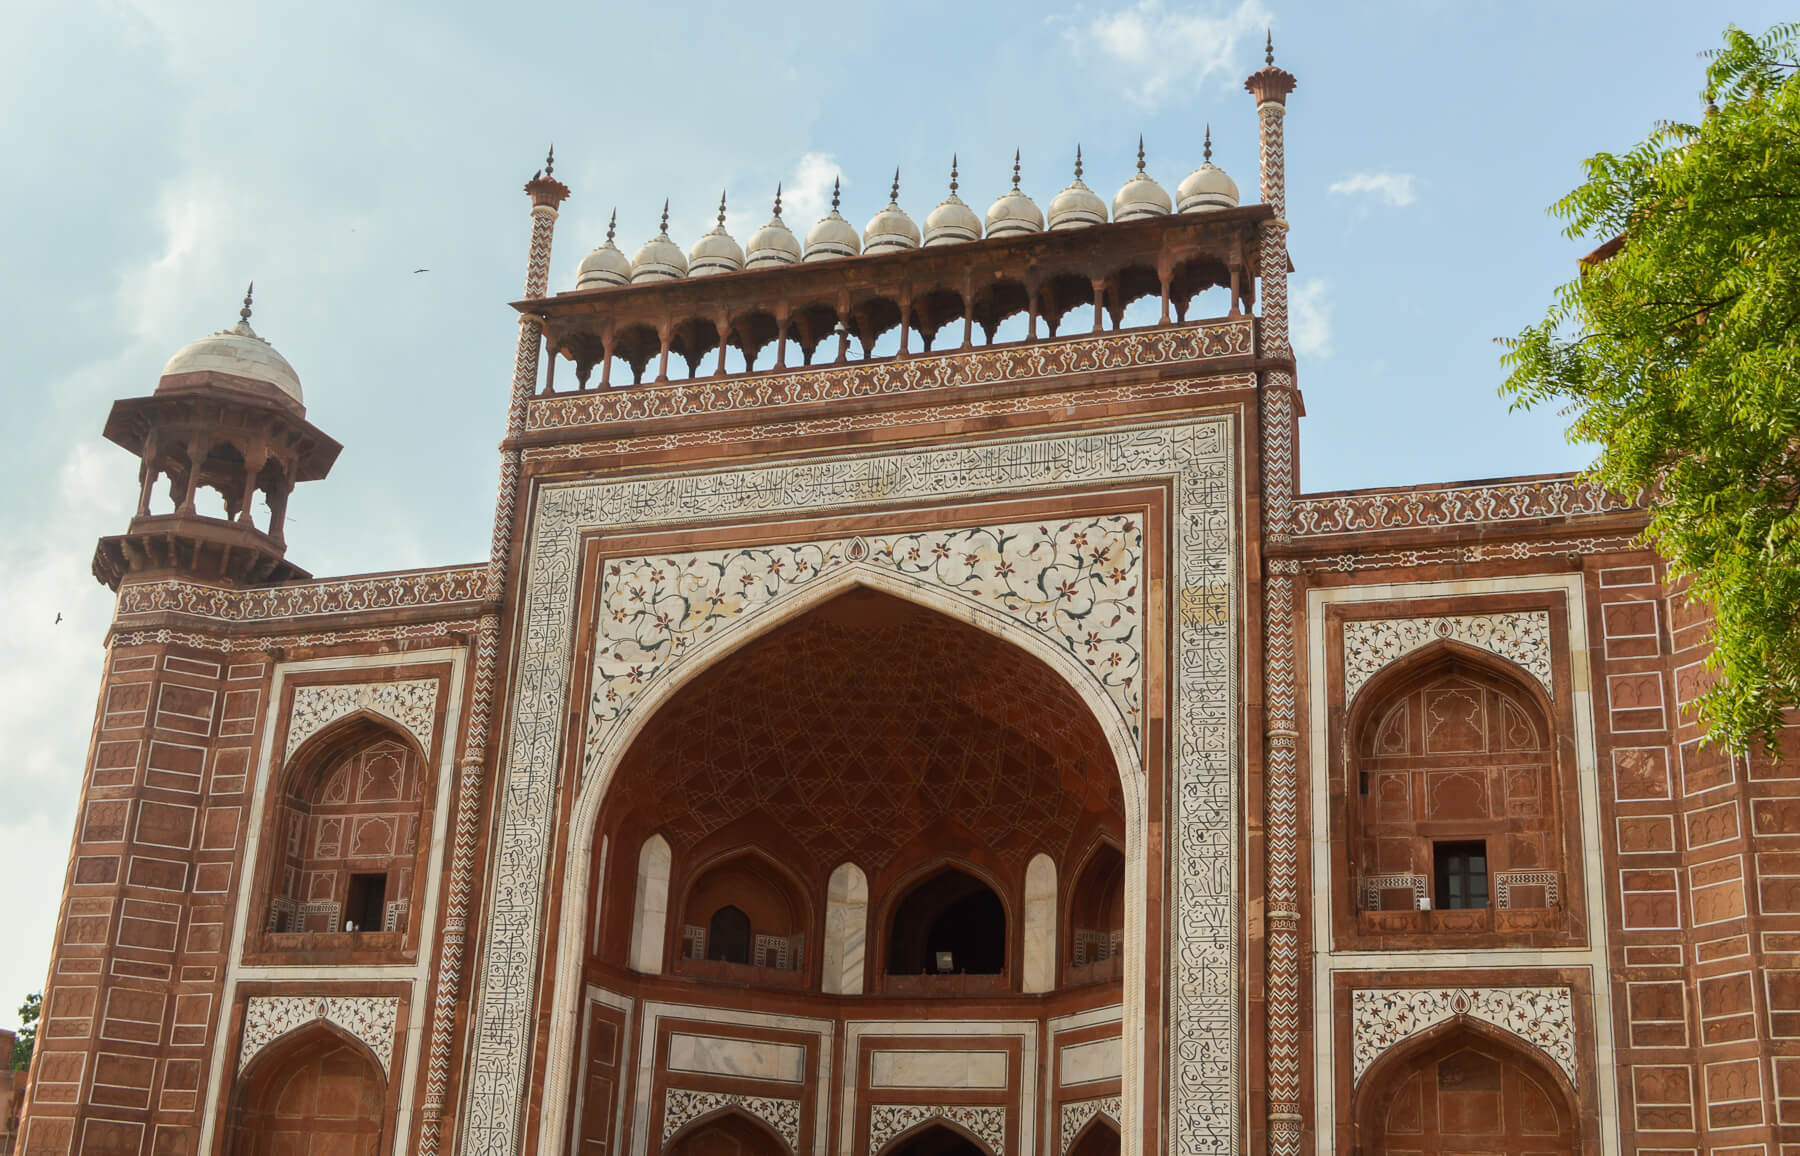 The terracotta entrance to the Taj Mahal, detailed archways and carvings